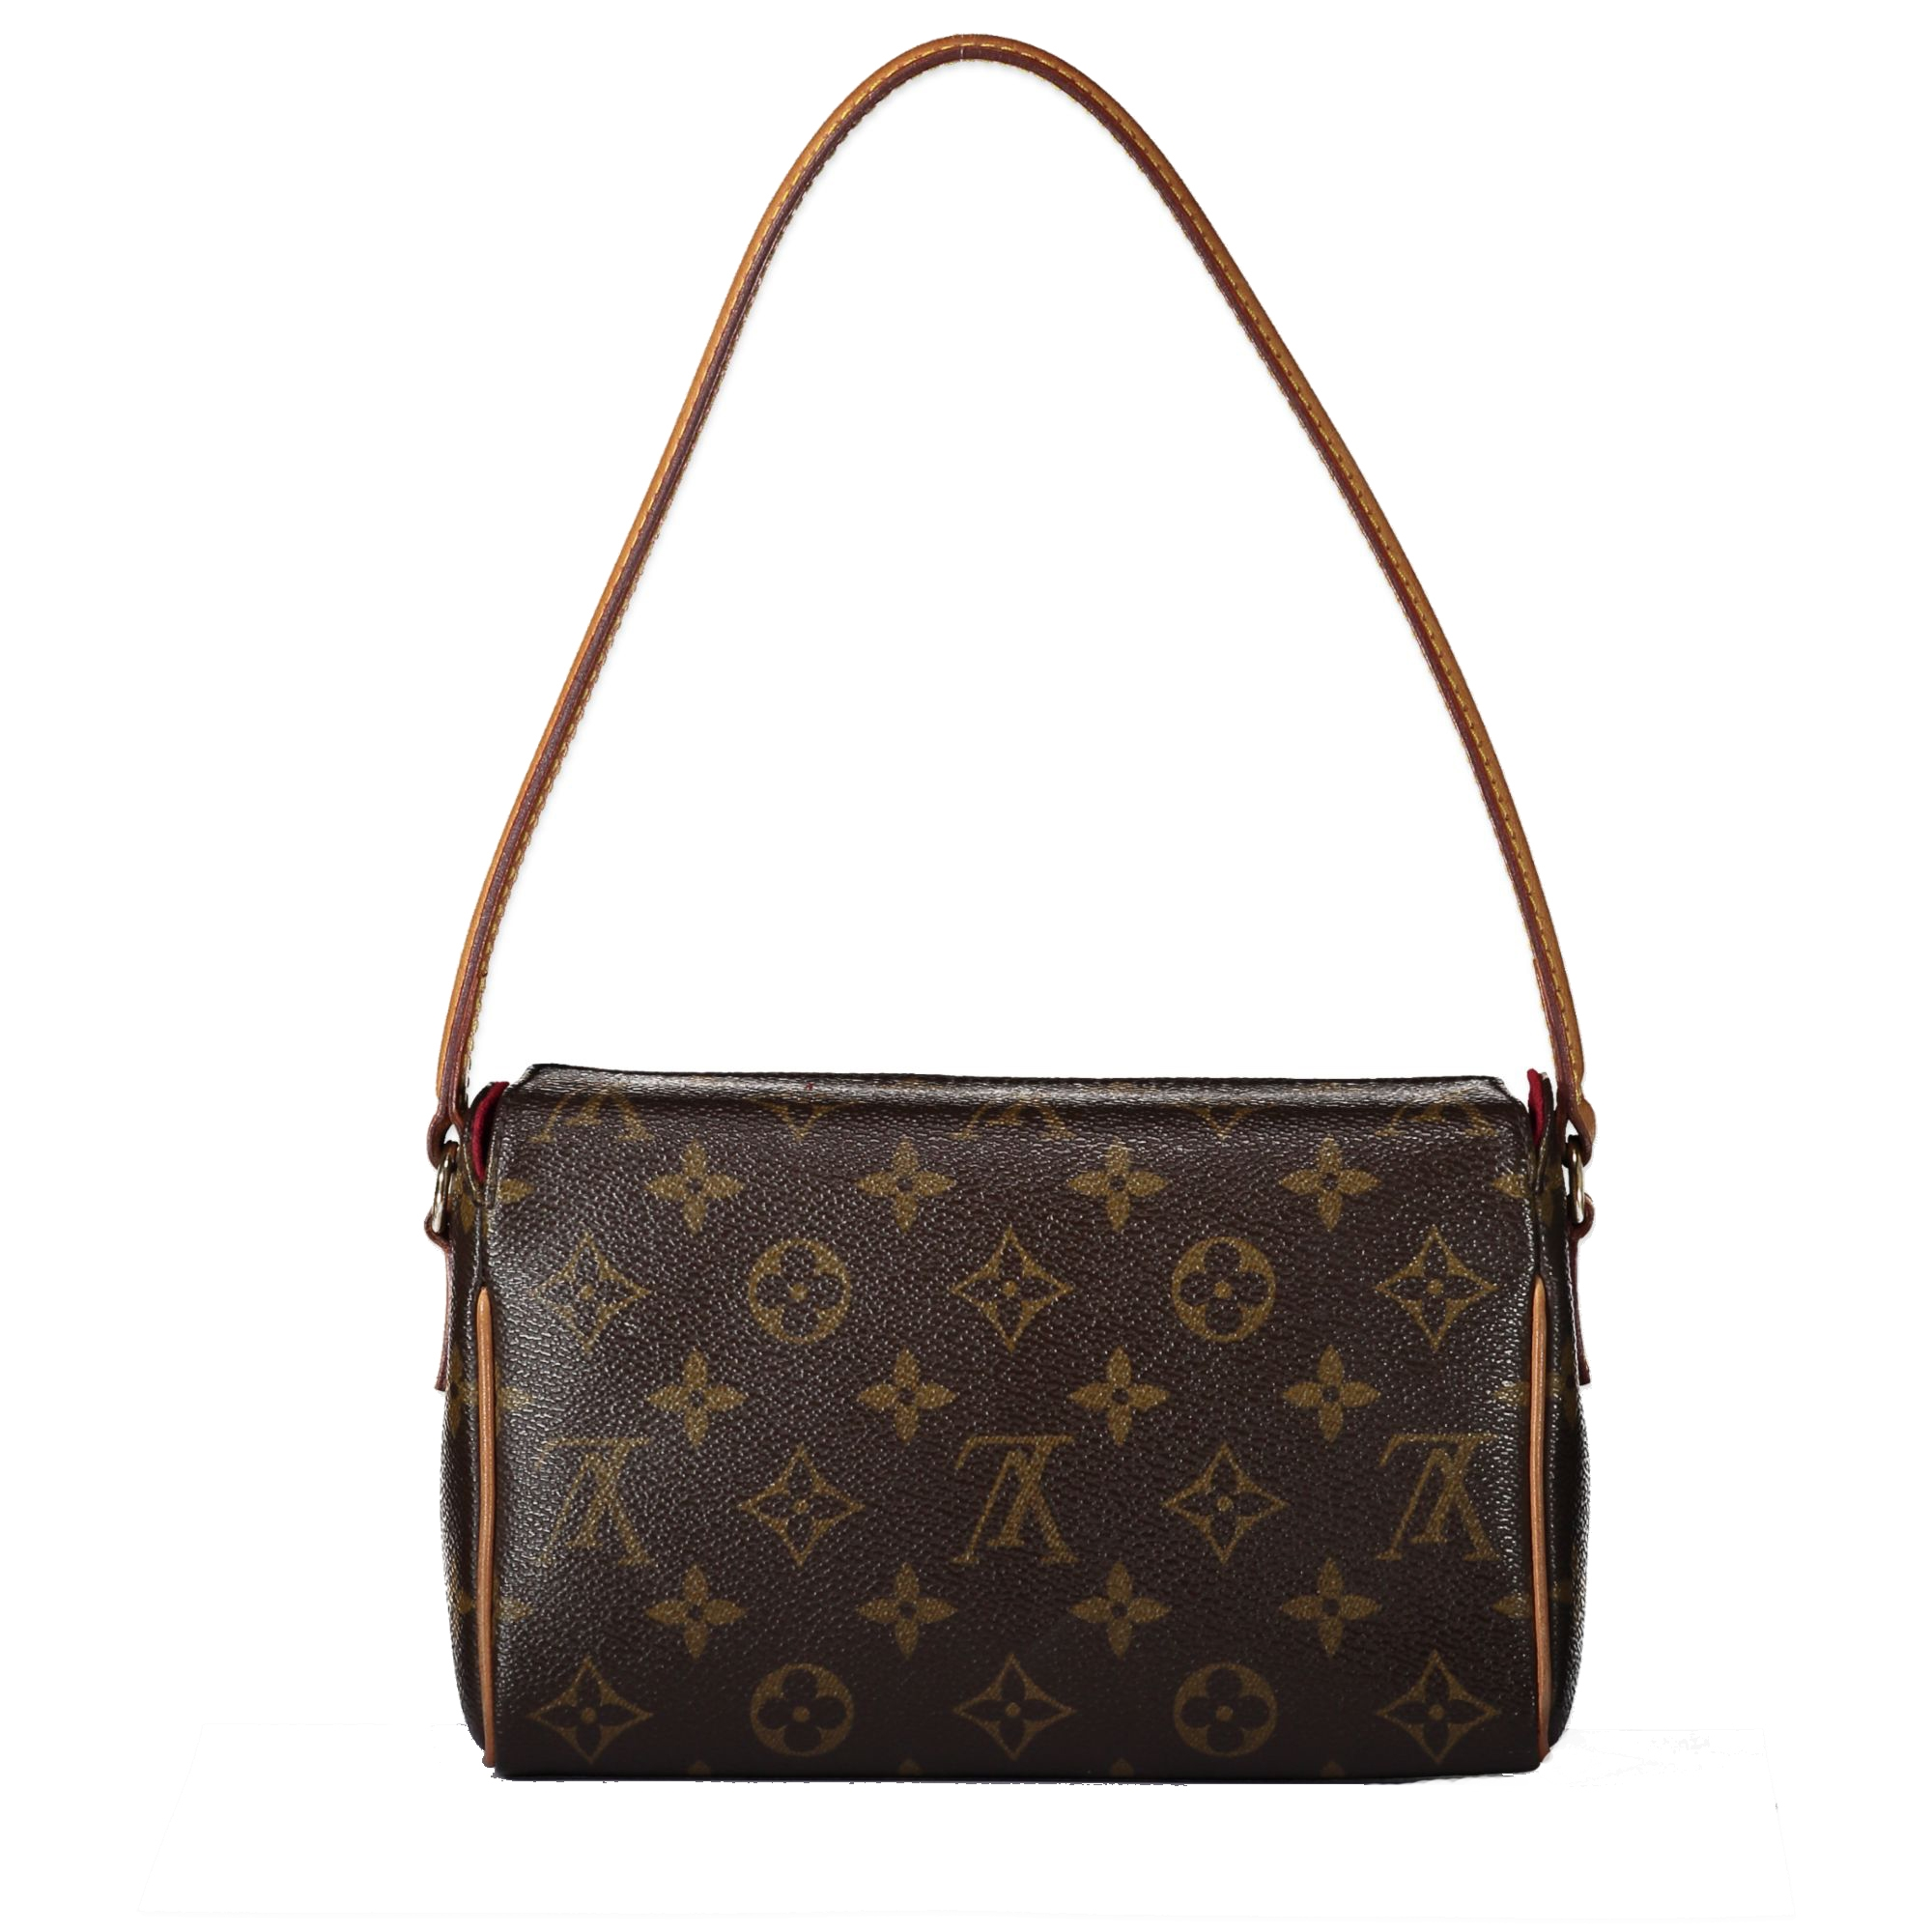 49a087e2543 Louis Vuitton Recital Monogram Mini Bag Louis Vuitton Recital Monogram Mini  Bag